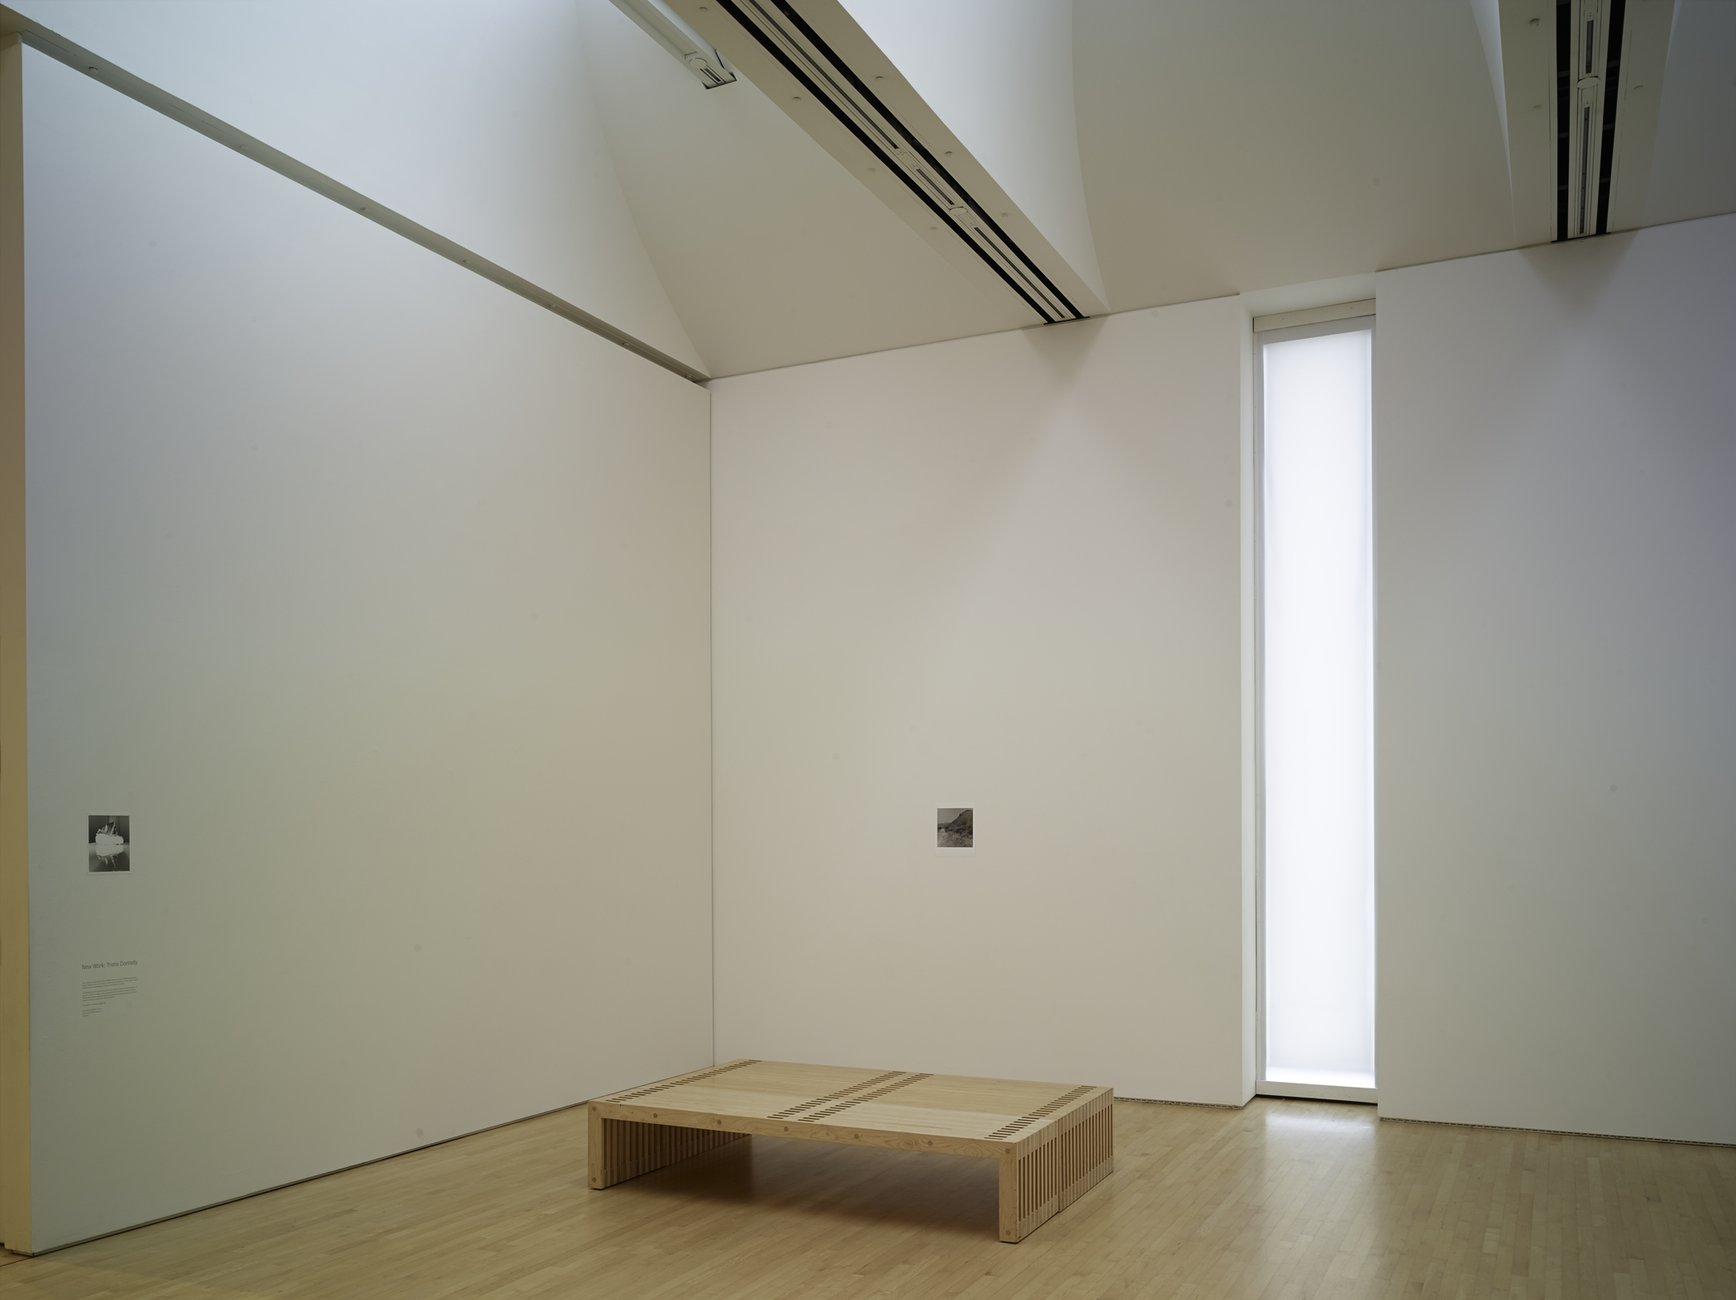 A room with two small photographs and a long glowing window.